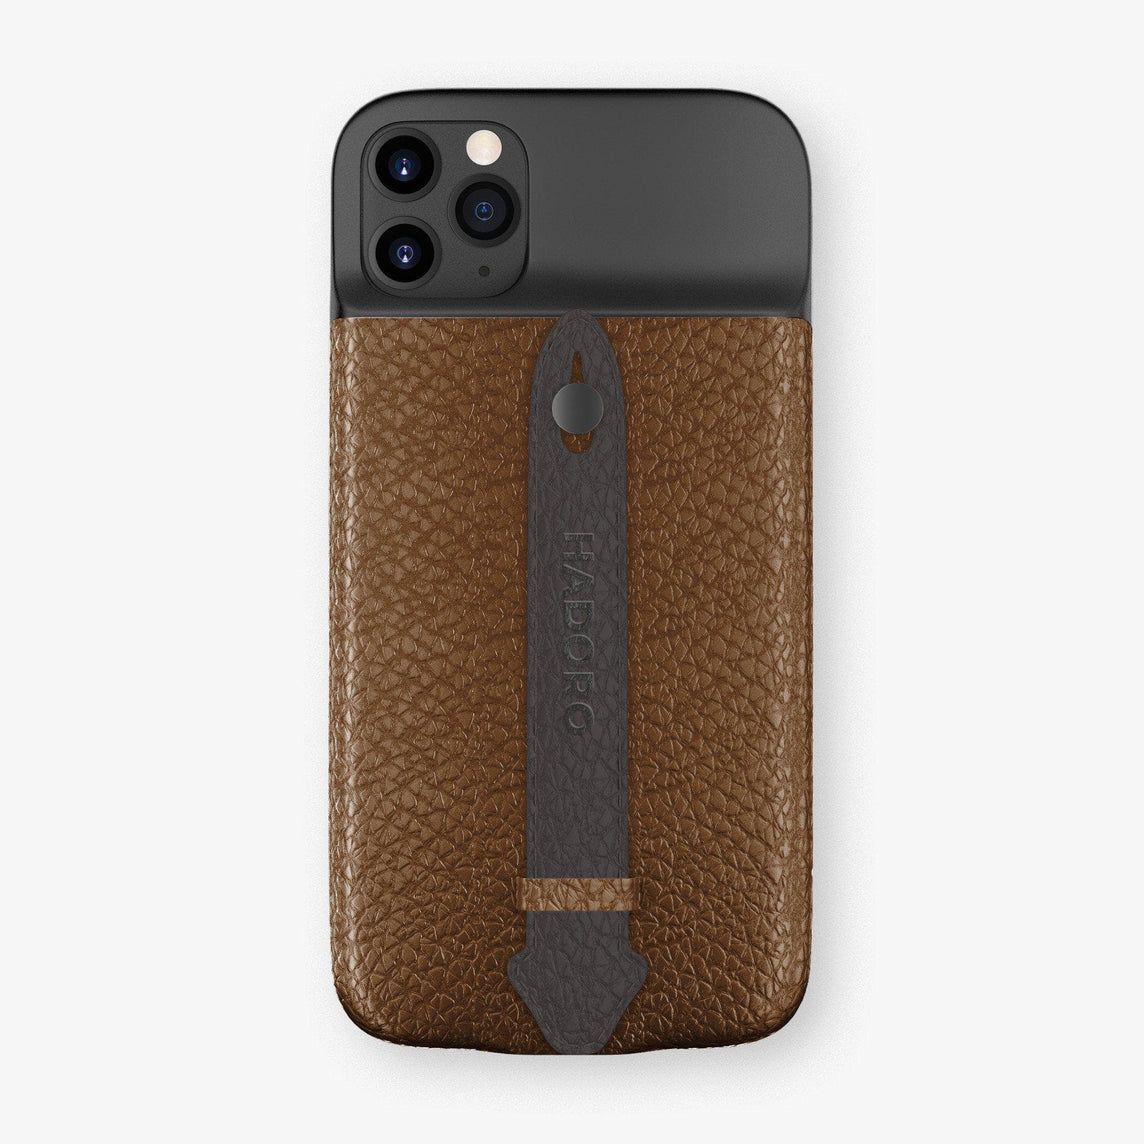 Calfskin Battery Finger Case for iPhone 11 Pro Max | Brown/Anthracite - Black without-personalization